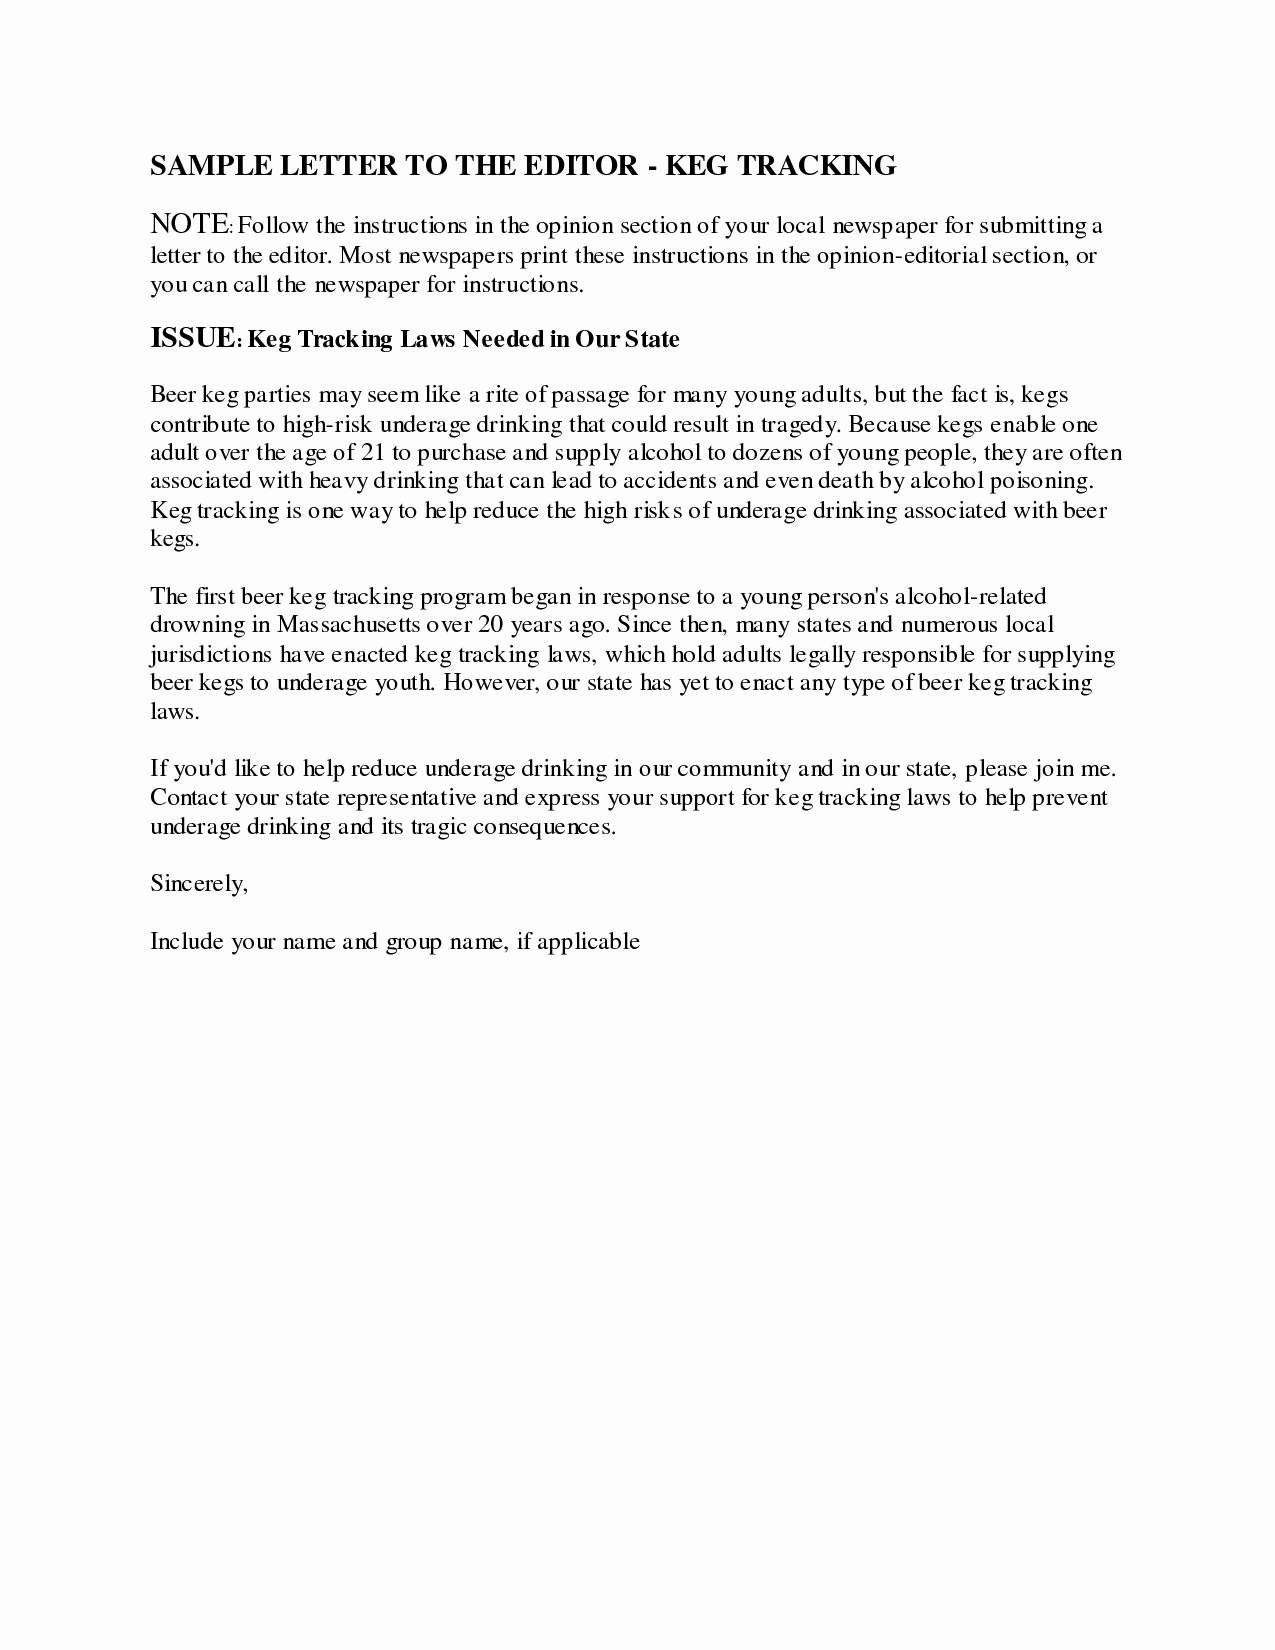 Letter to the Editor Templates Awesome format for A Letter to the Editor Best Template Collection